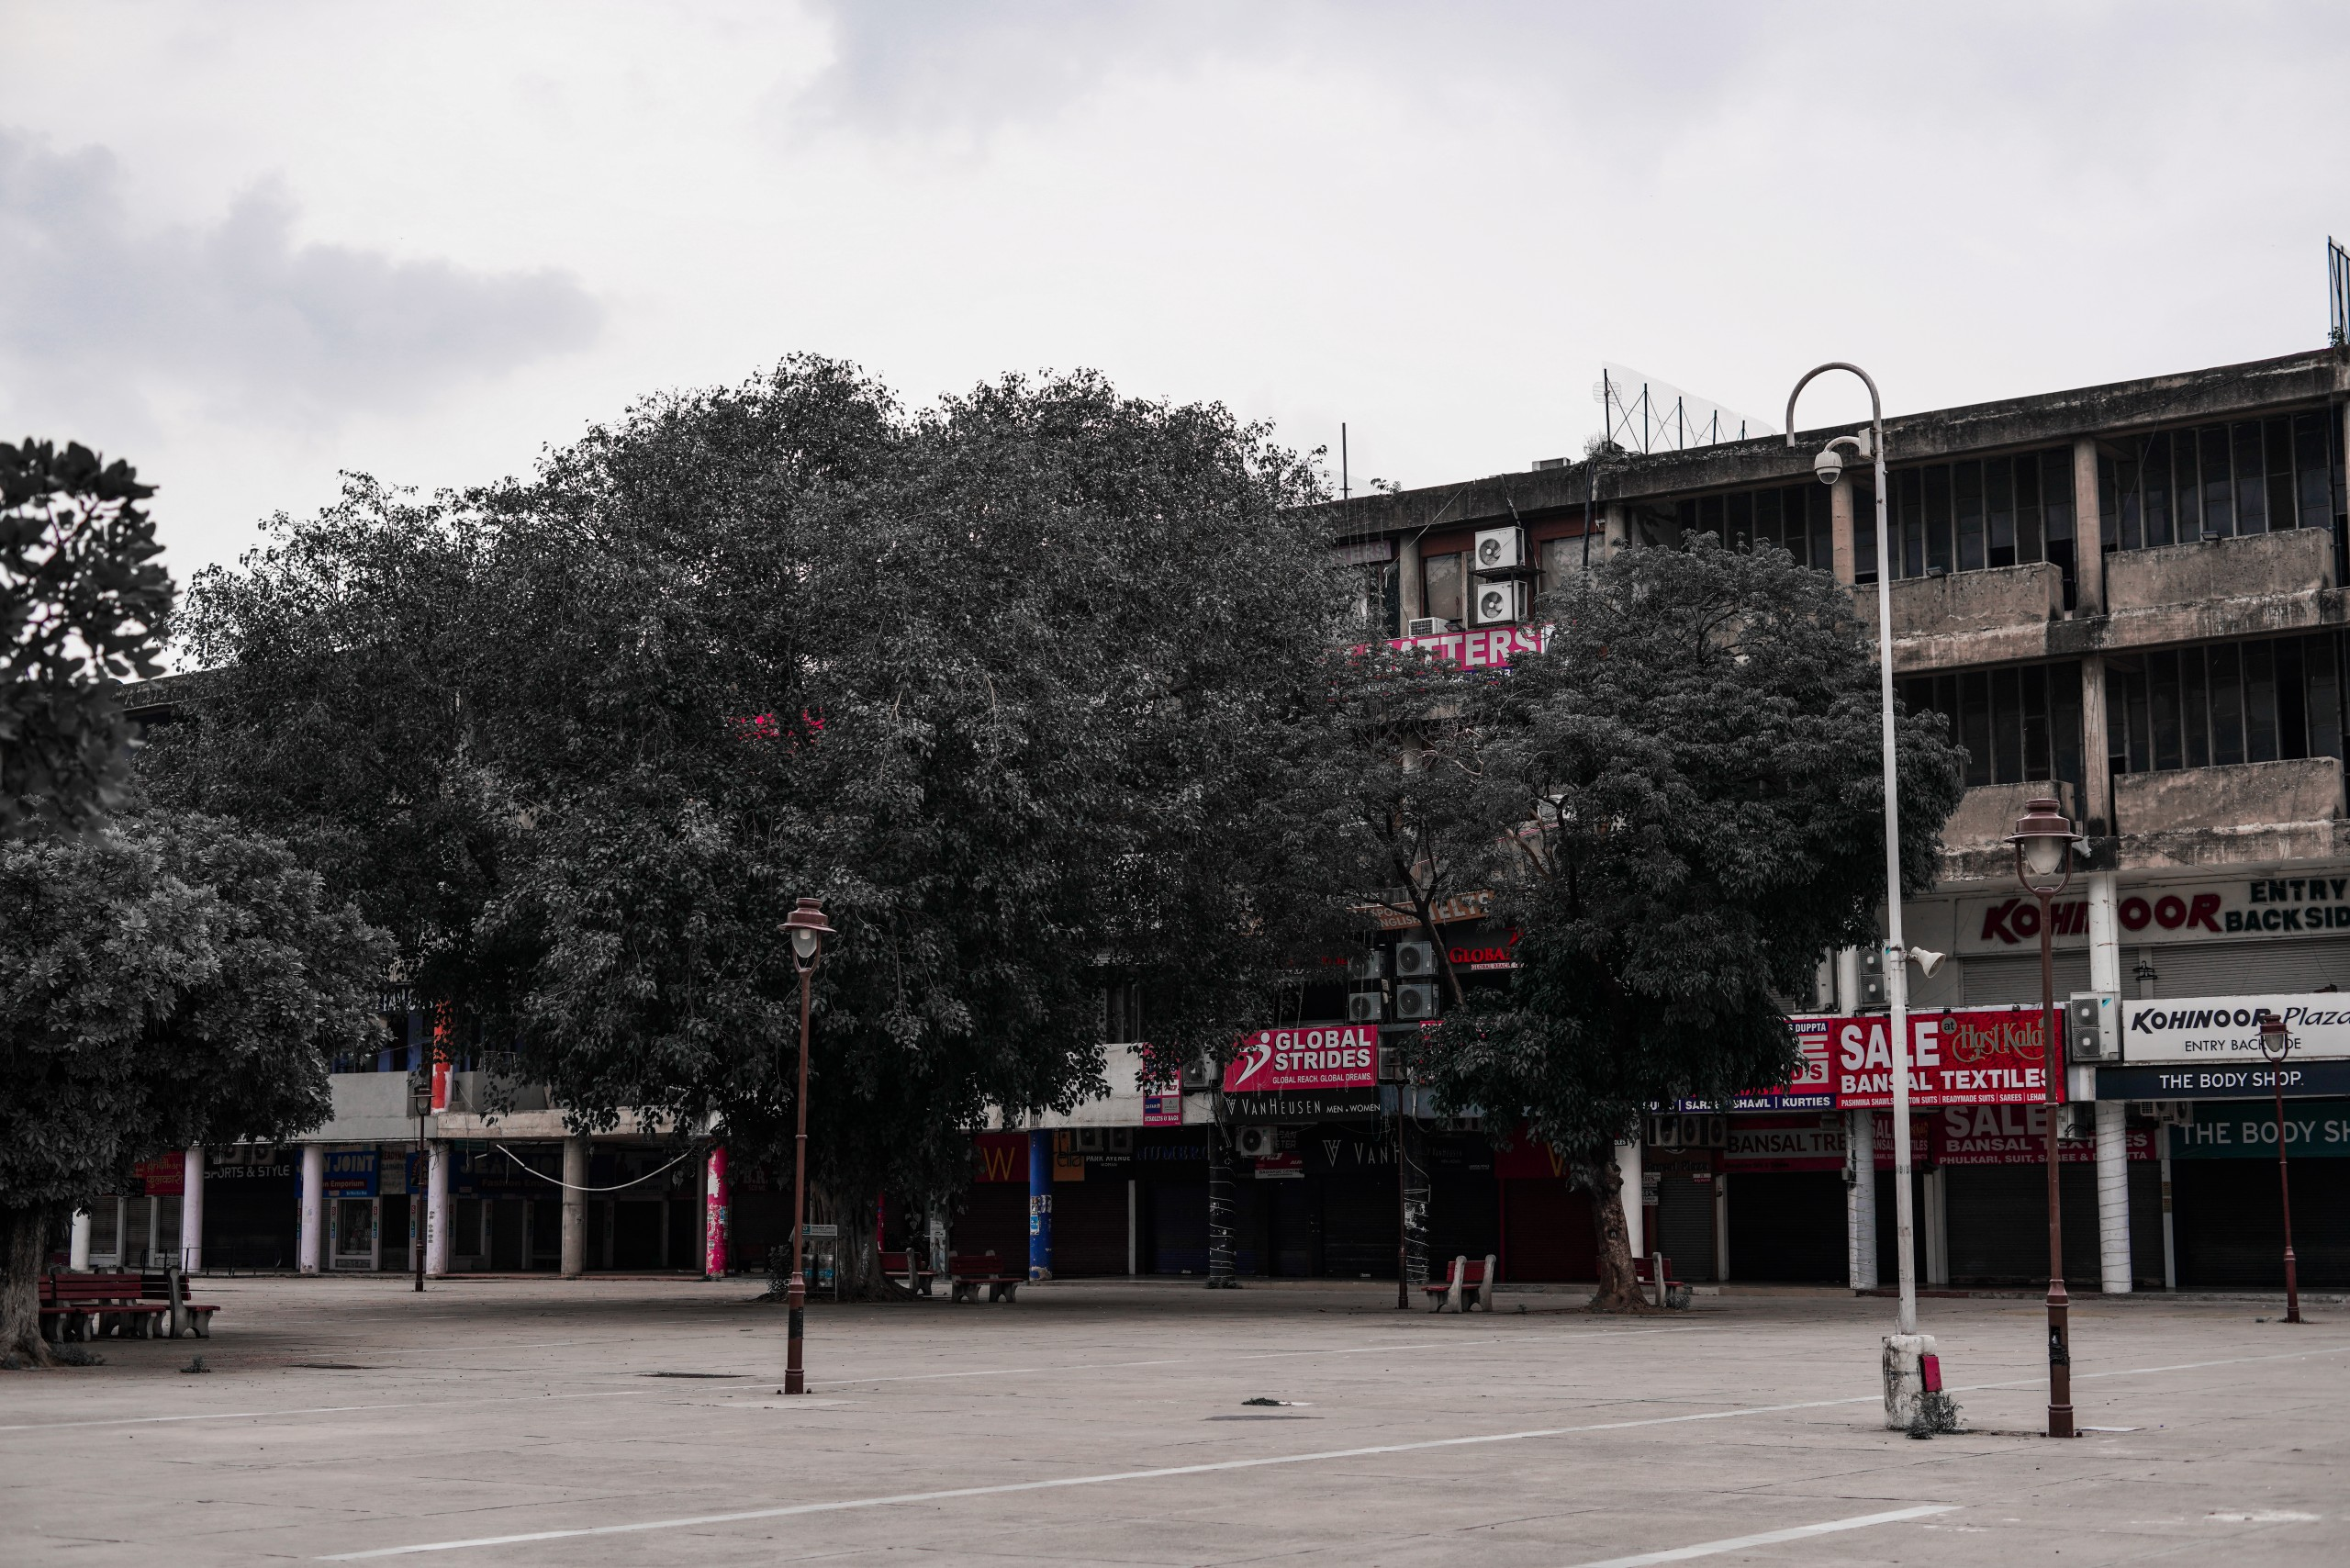 Sector 17 of Chandigarh